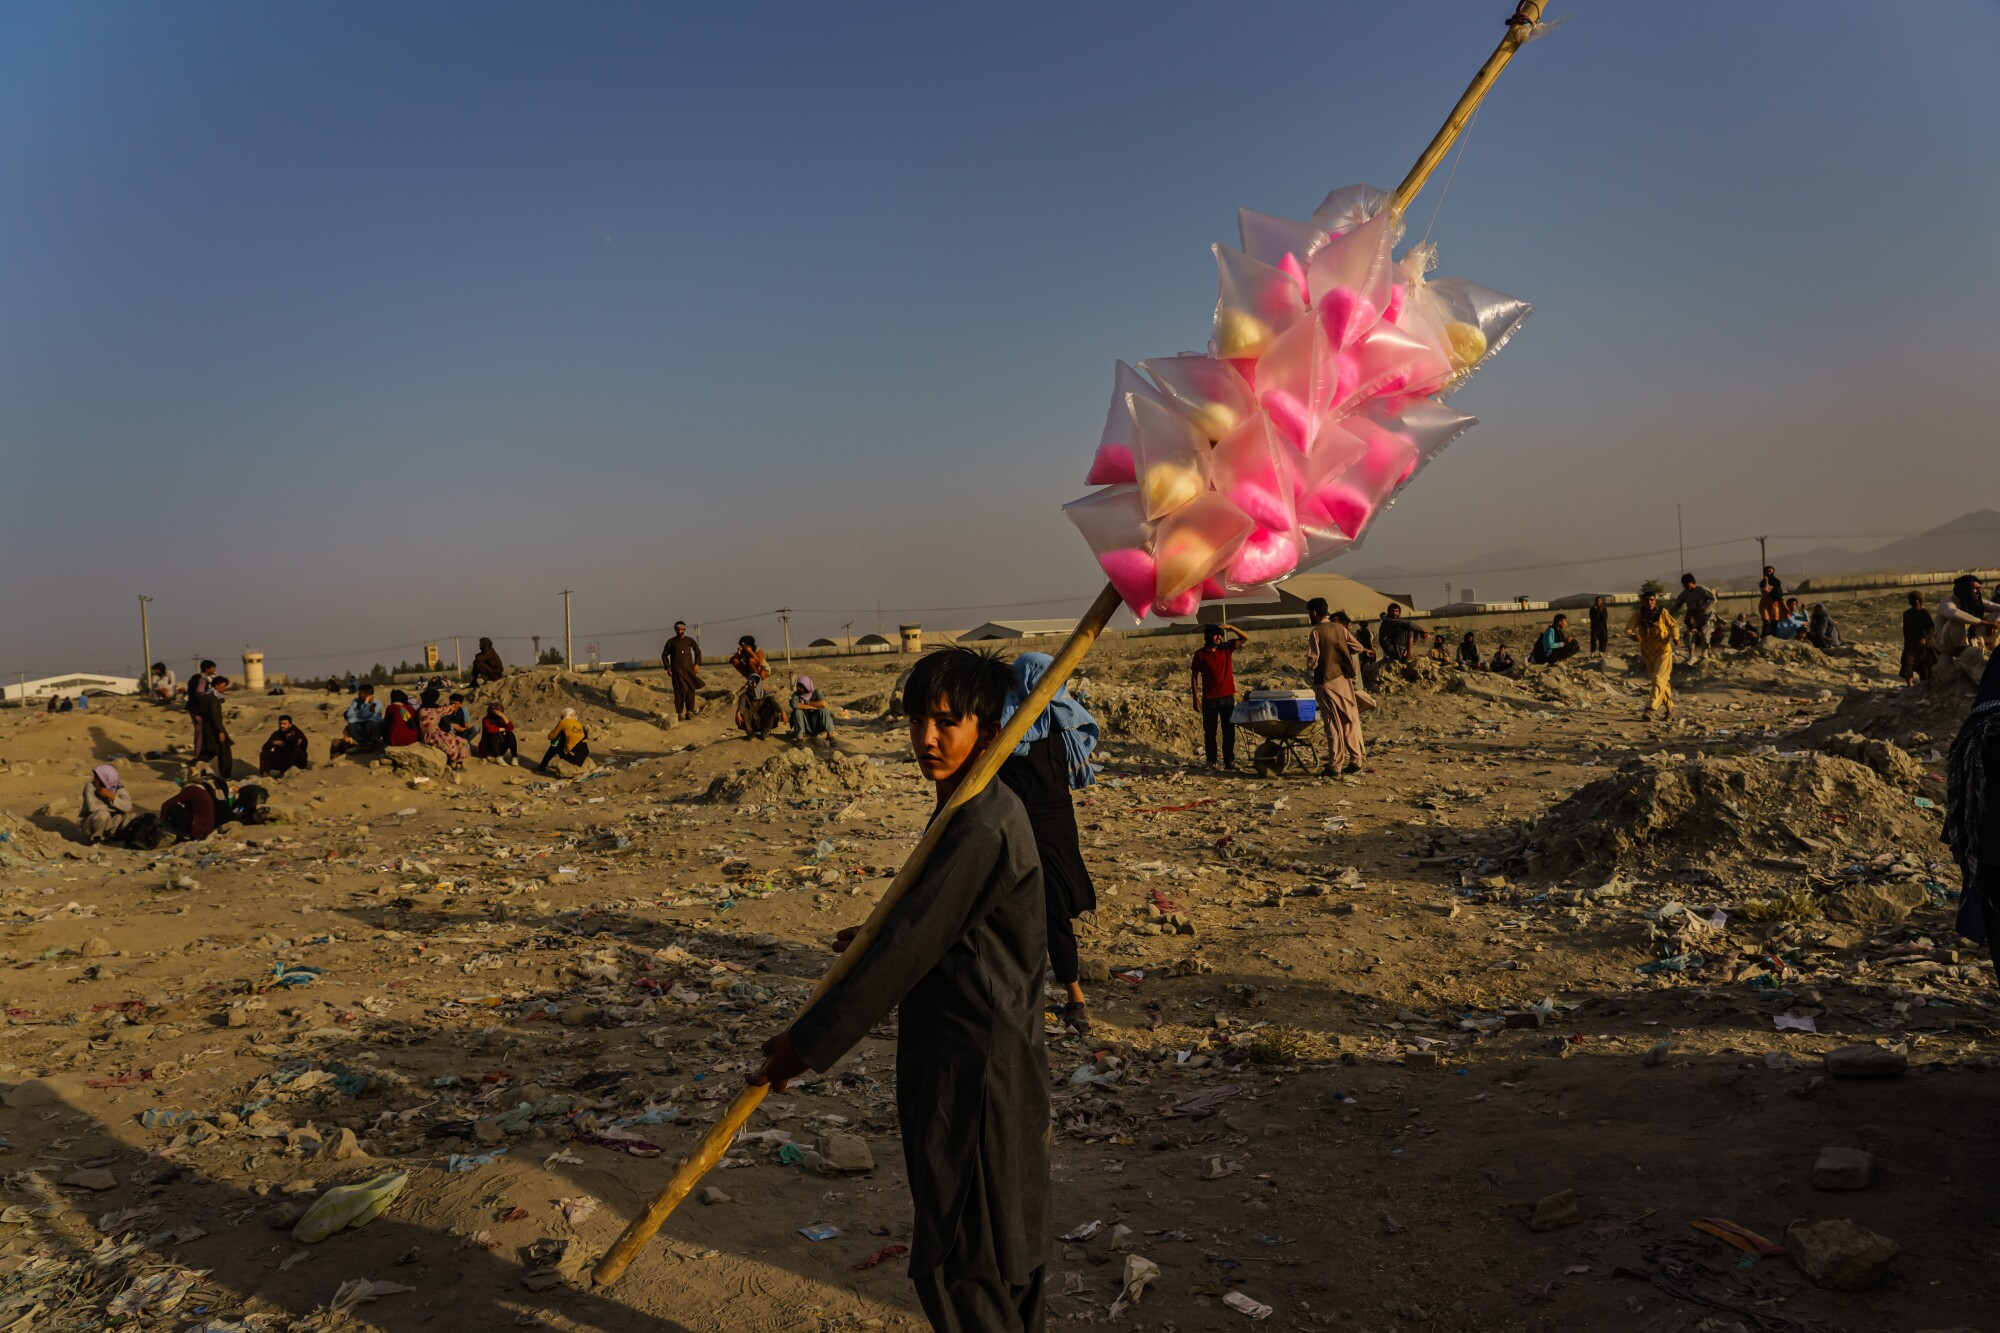 A boy holds a pole with cotton candy in an area with people standing and sitting on the ground.